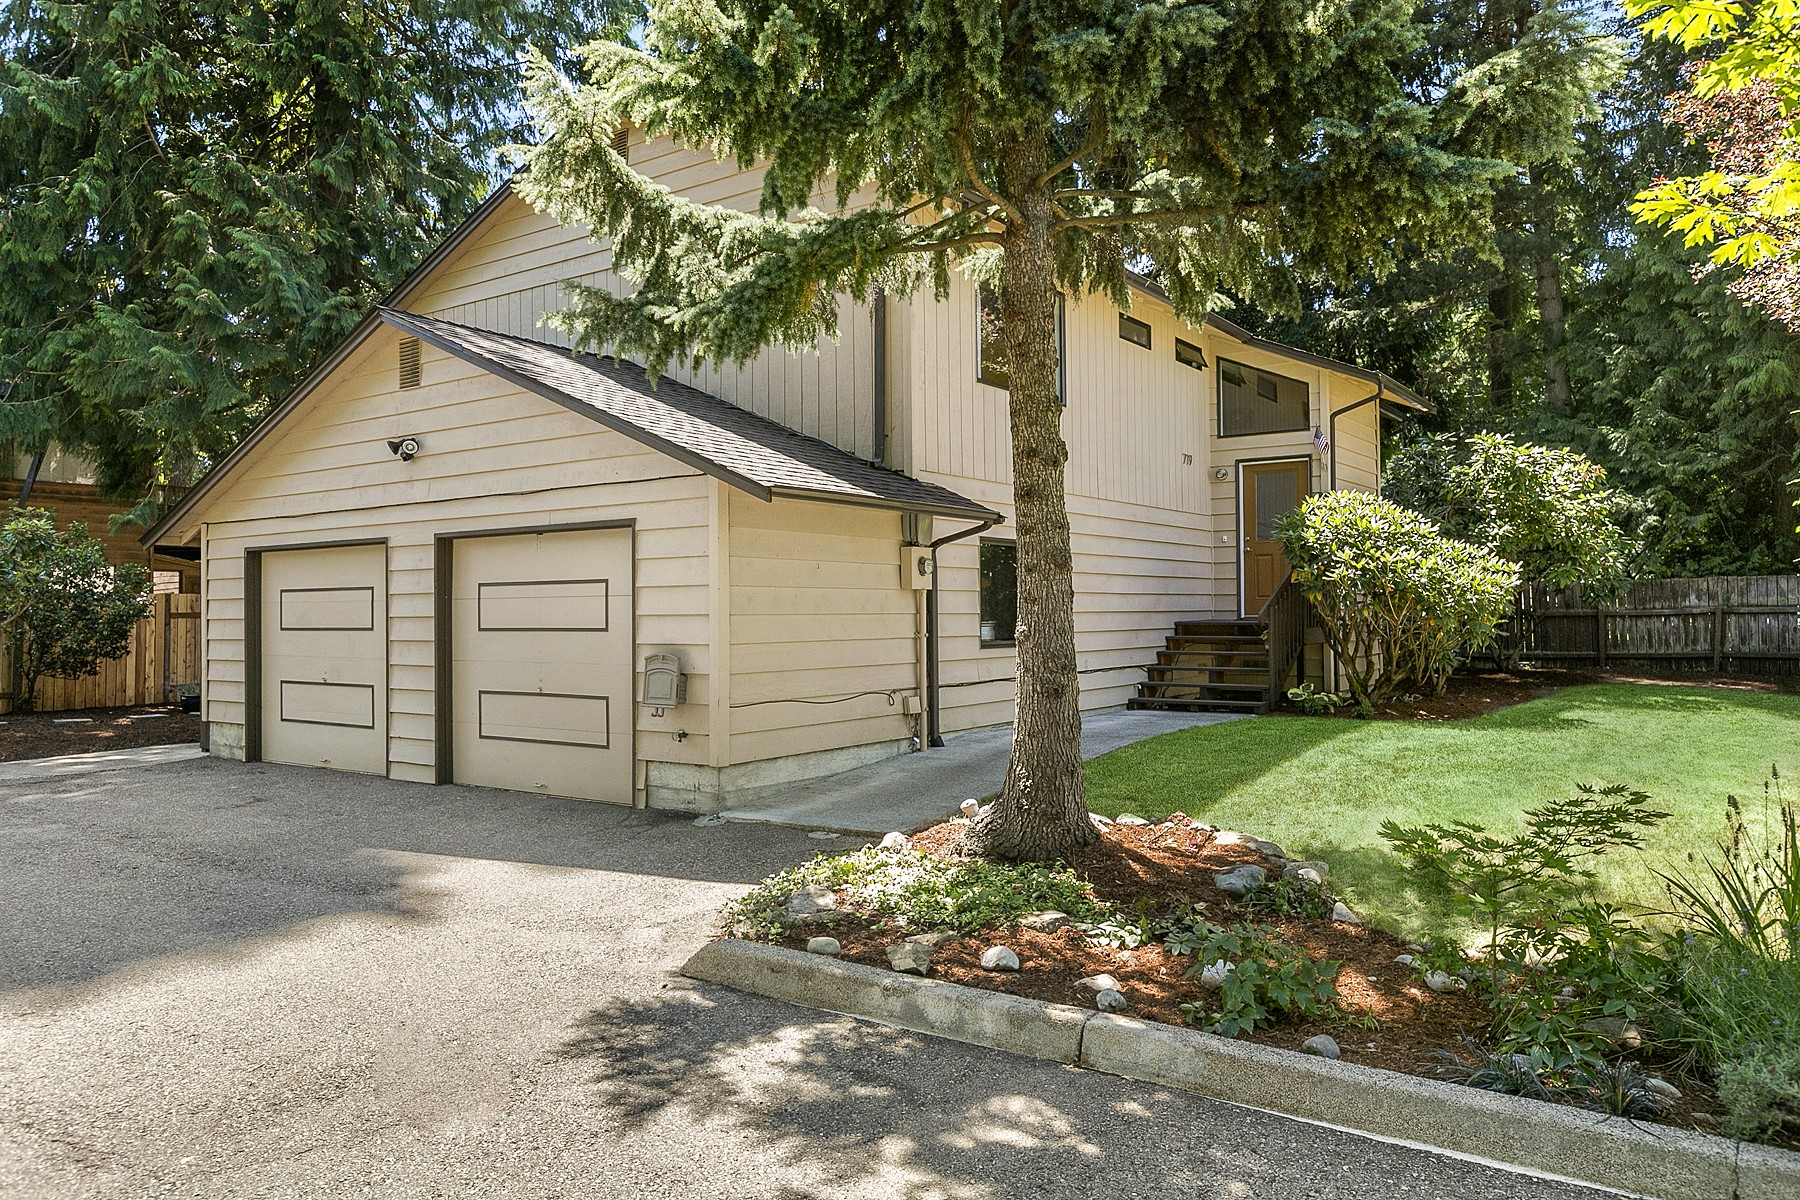 Single Family Home for Sale at Immaculate Richmond Highlands Traditional 719 N 184th Street Shoreline, Washington 98133 United States